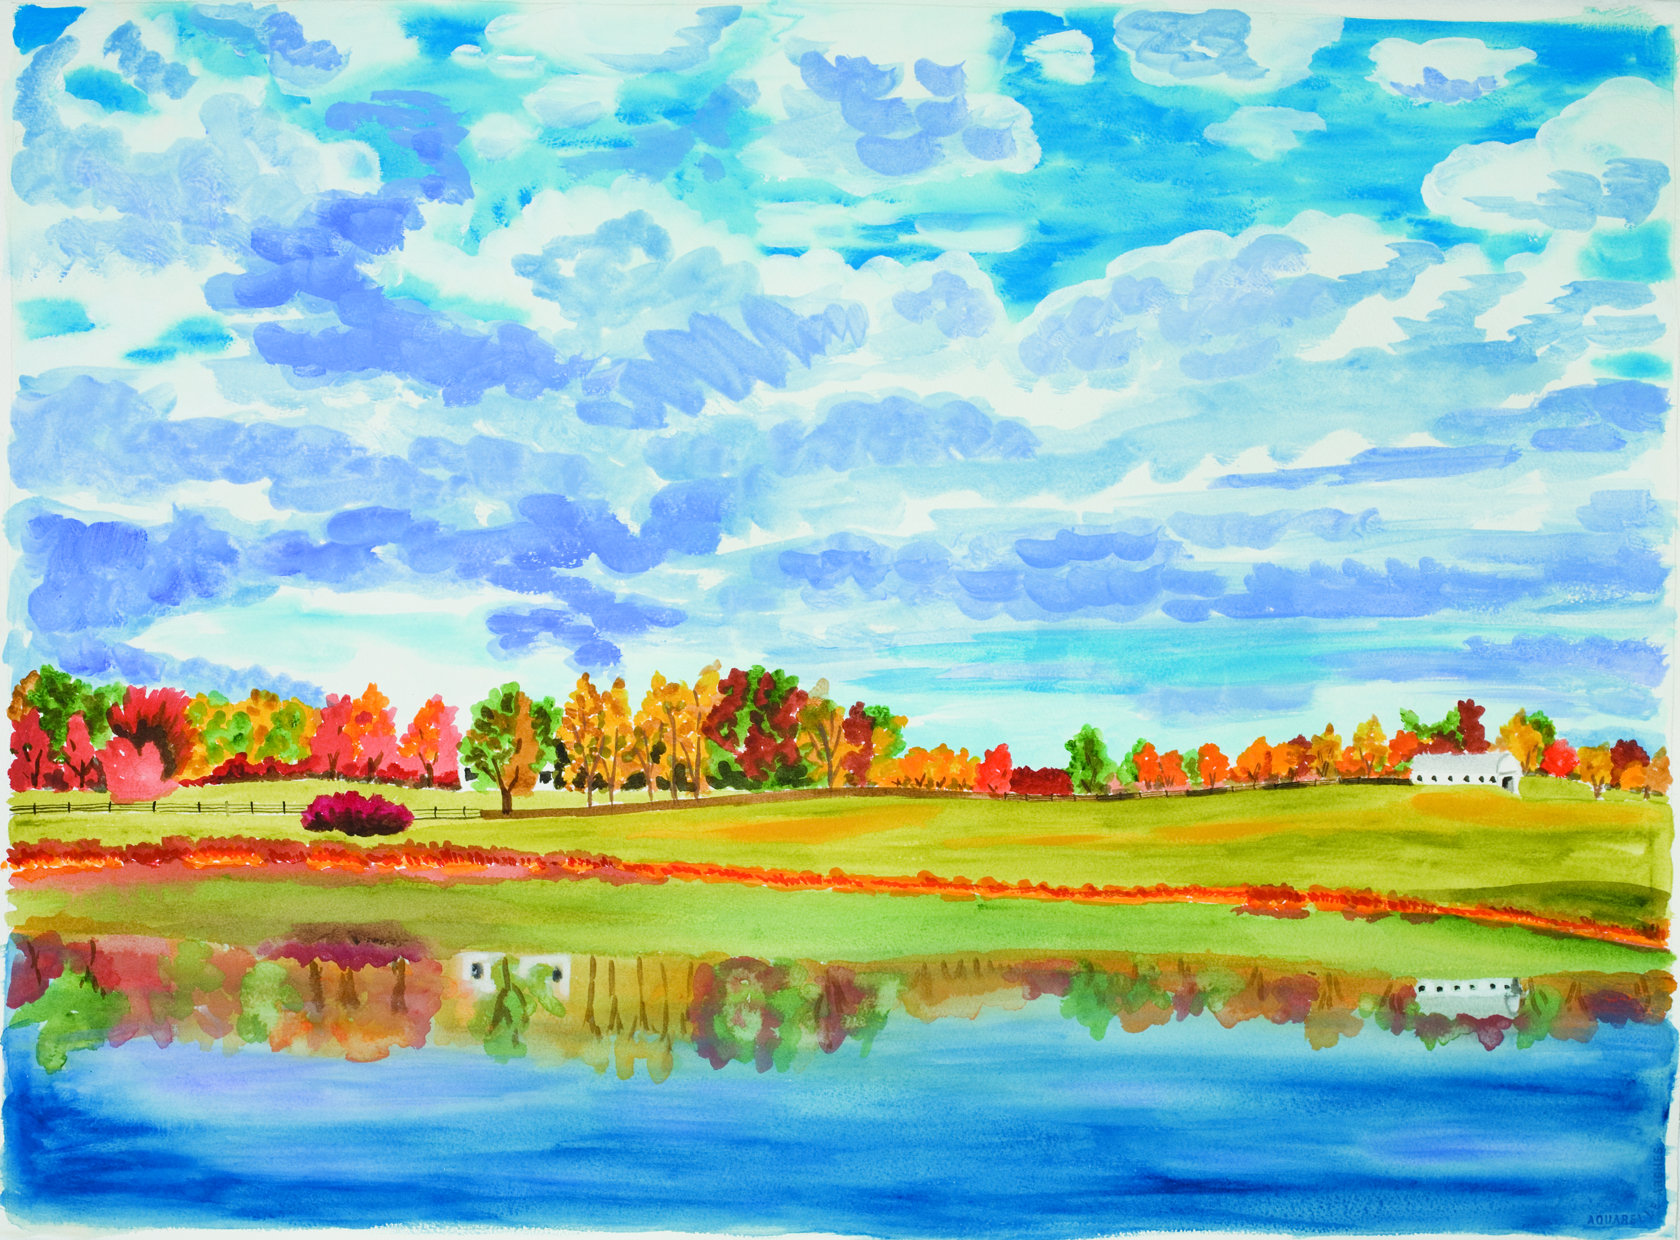 How To Paint A Beautiful Landscape Painting